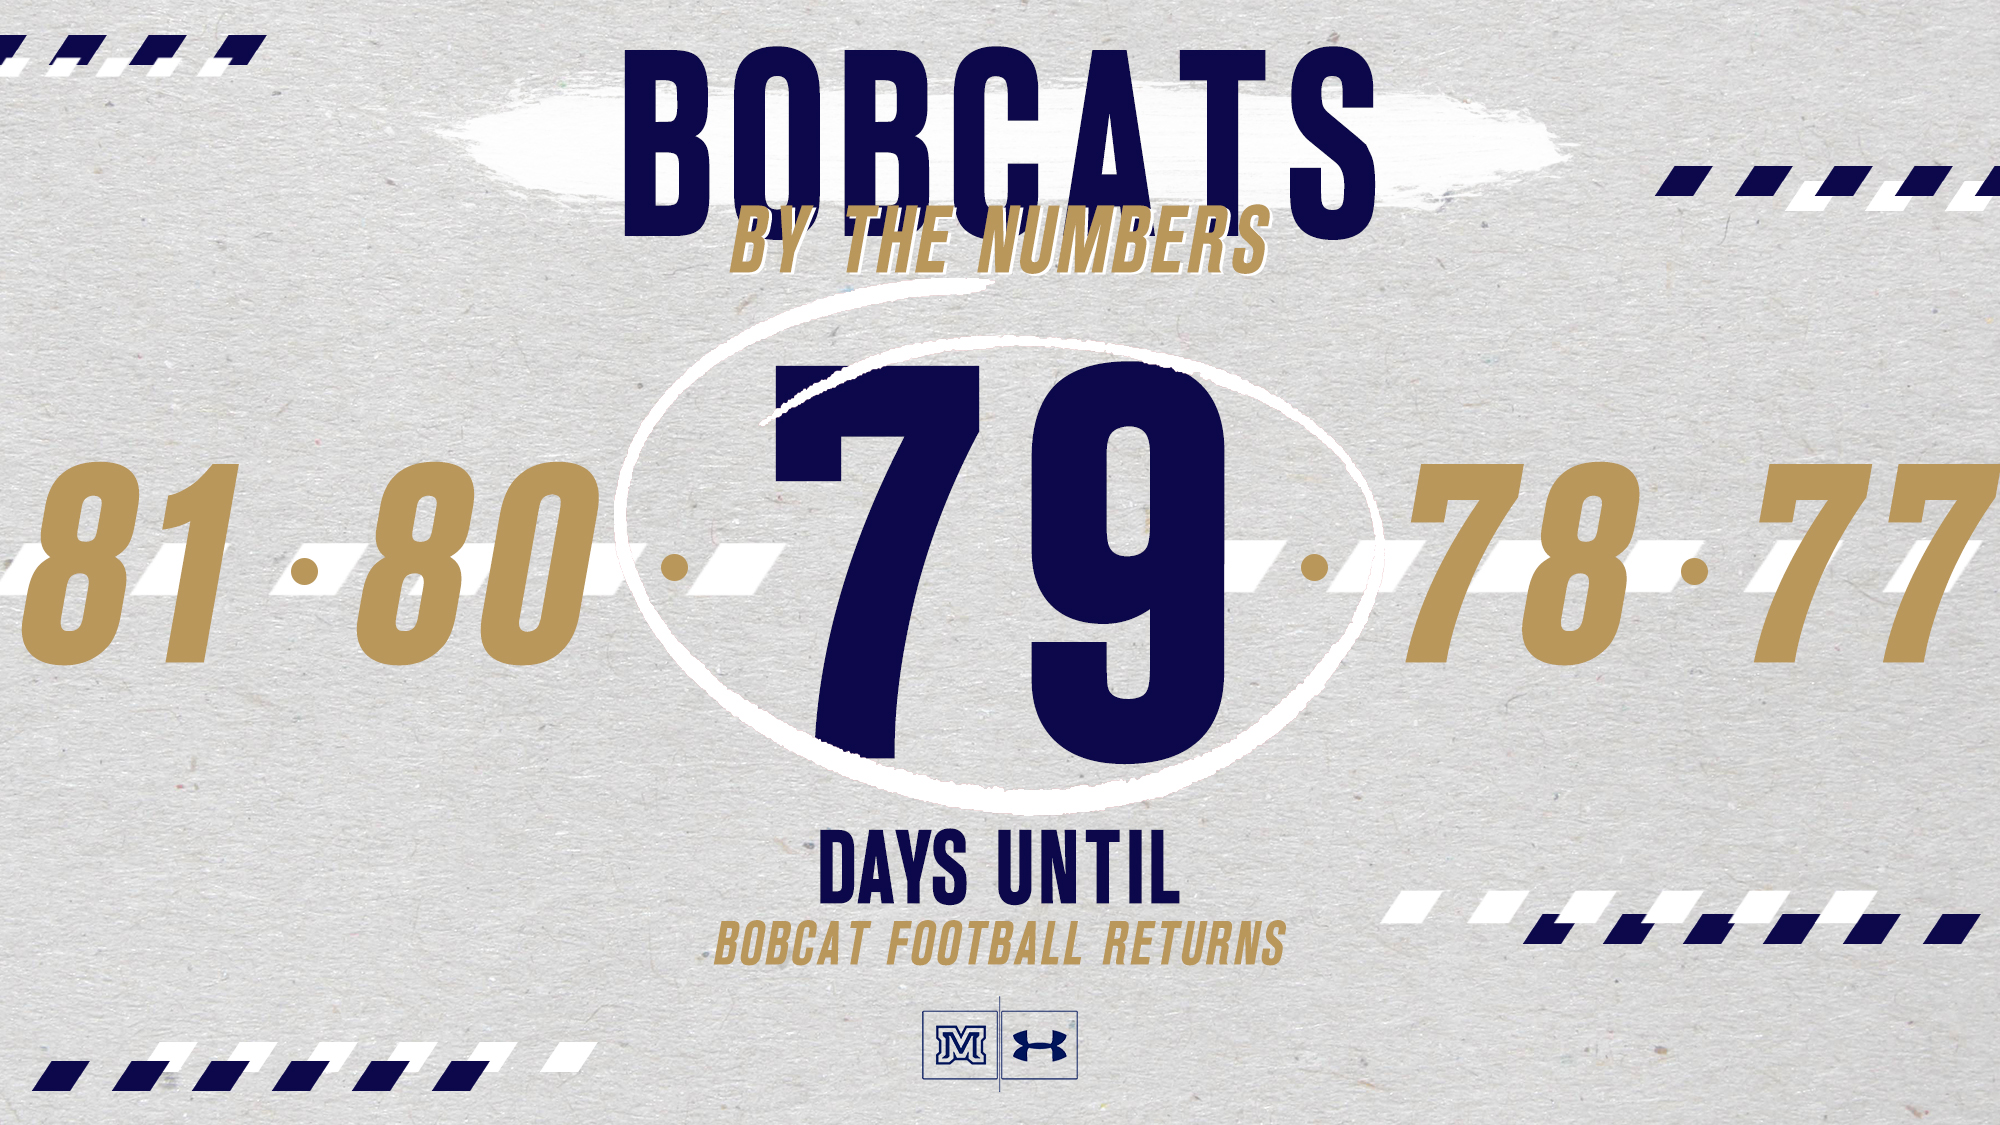 BOBCATS BY THE NUMBERS: 79 Days to Kickoff, and a Look at a Bobcat Who Threw That Many Touchdown Passes